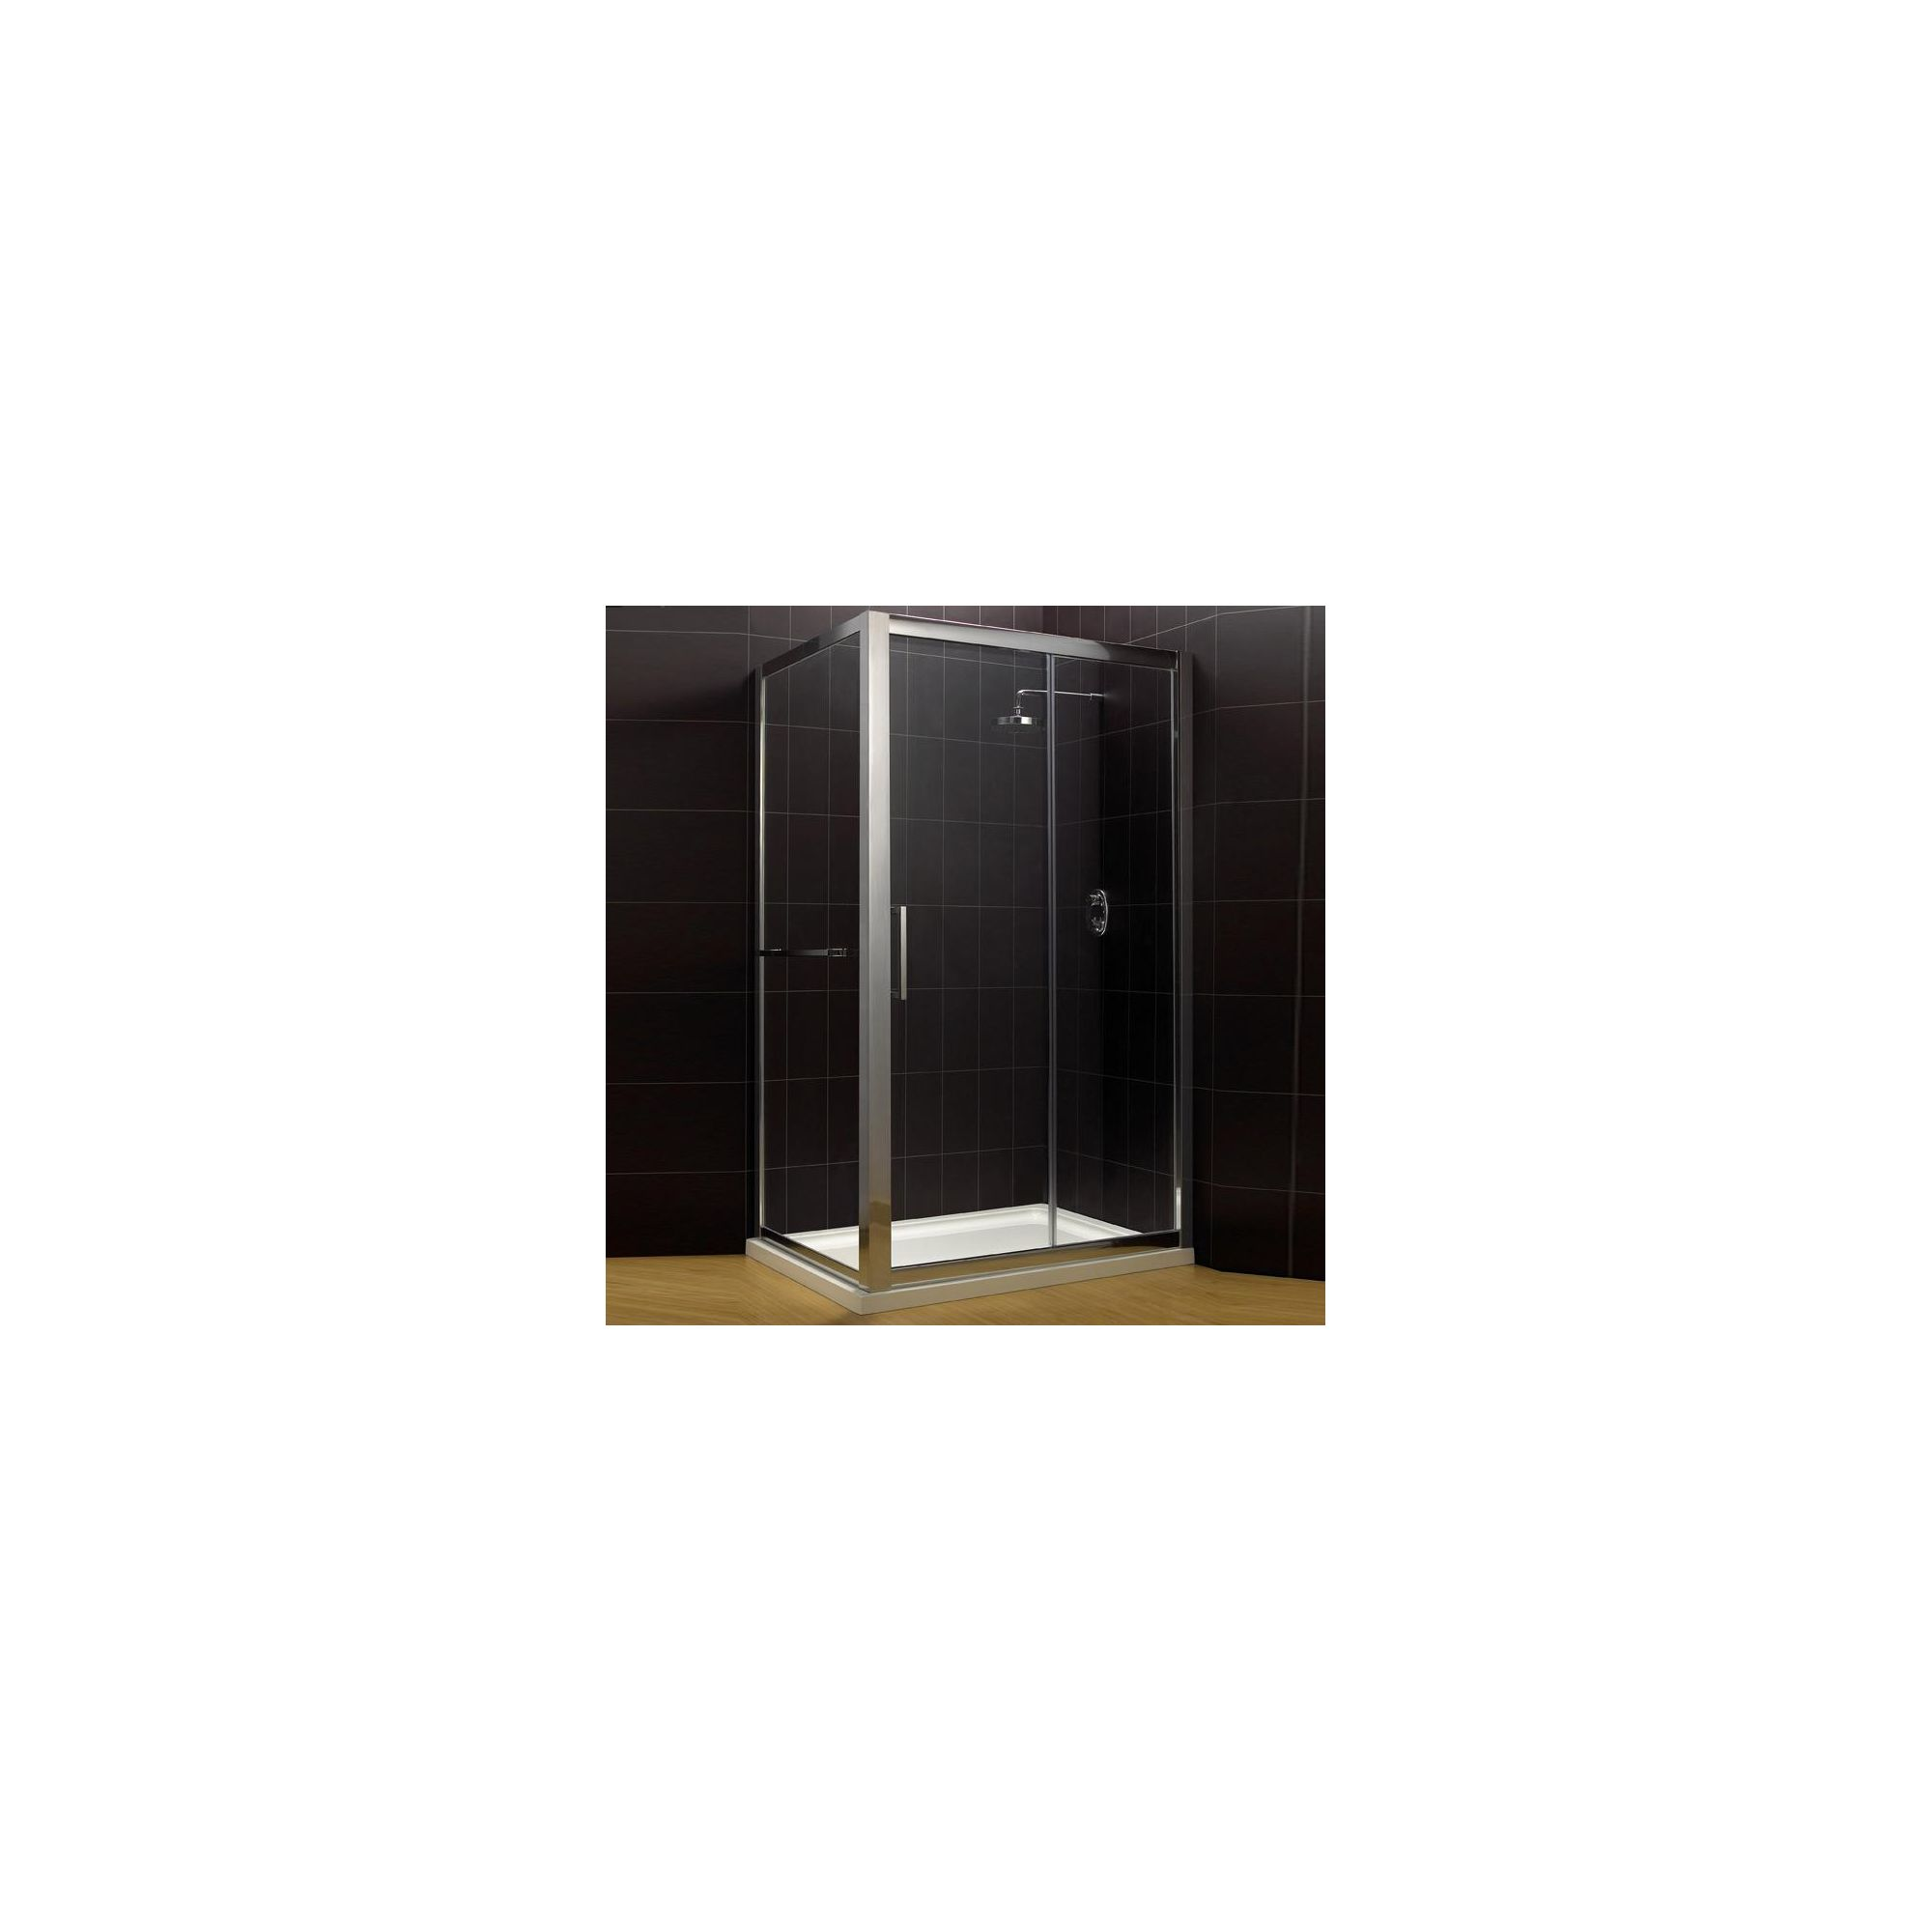 Duchy Supreme Silver Sliding Door Shower Enclosure, 1100mm x 700mm, Standard Tray, 8mm Glass at Tesco Direct